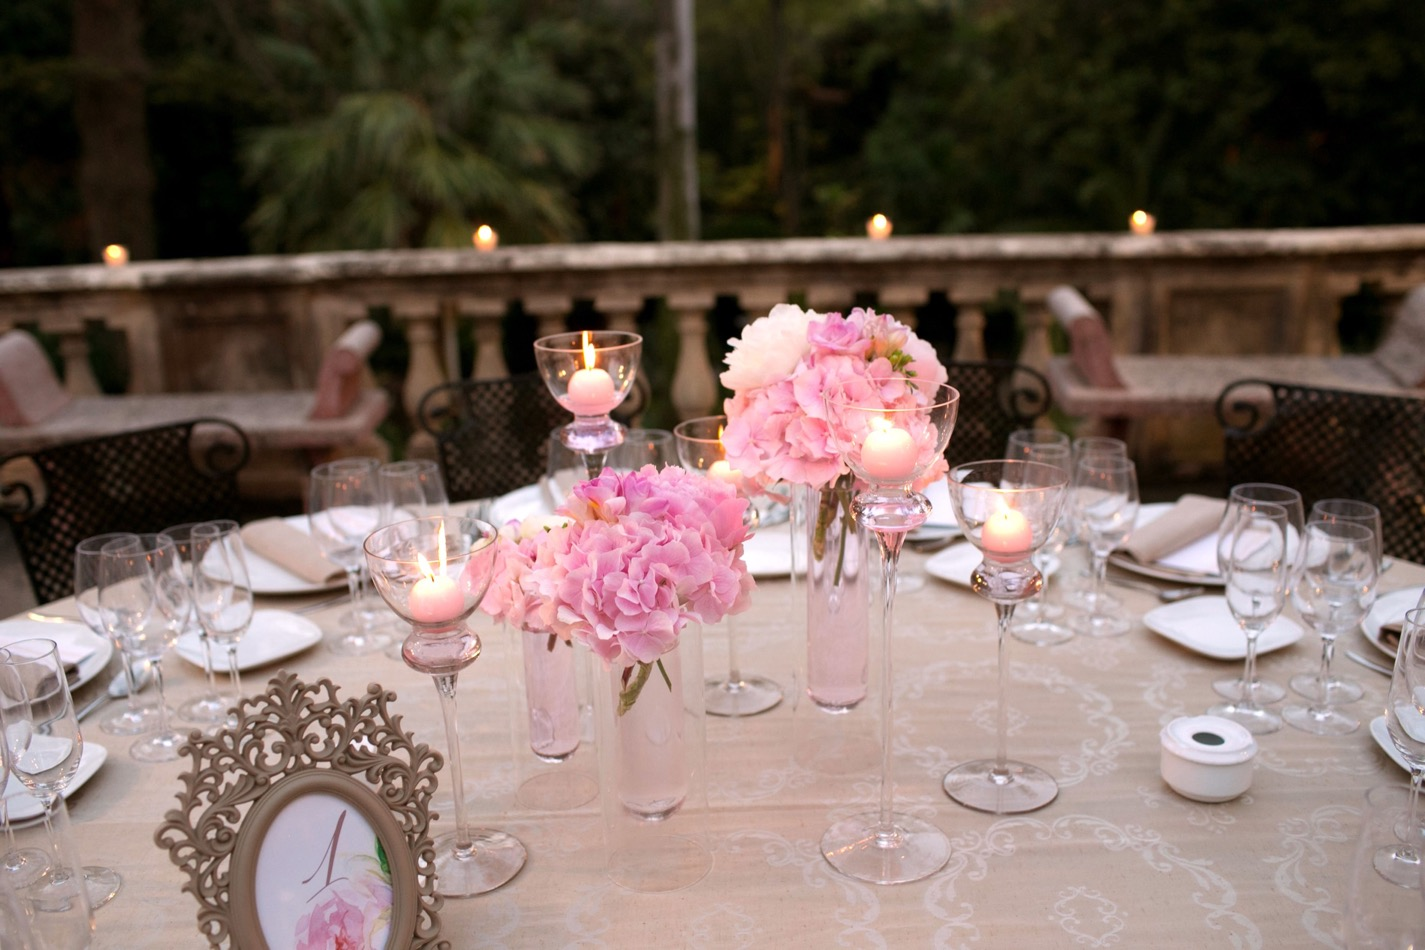 Si-Quiero-Wedding-Planner-By-Sira-Antequera-Vanesa-Jose-35-1